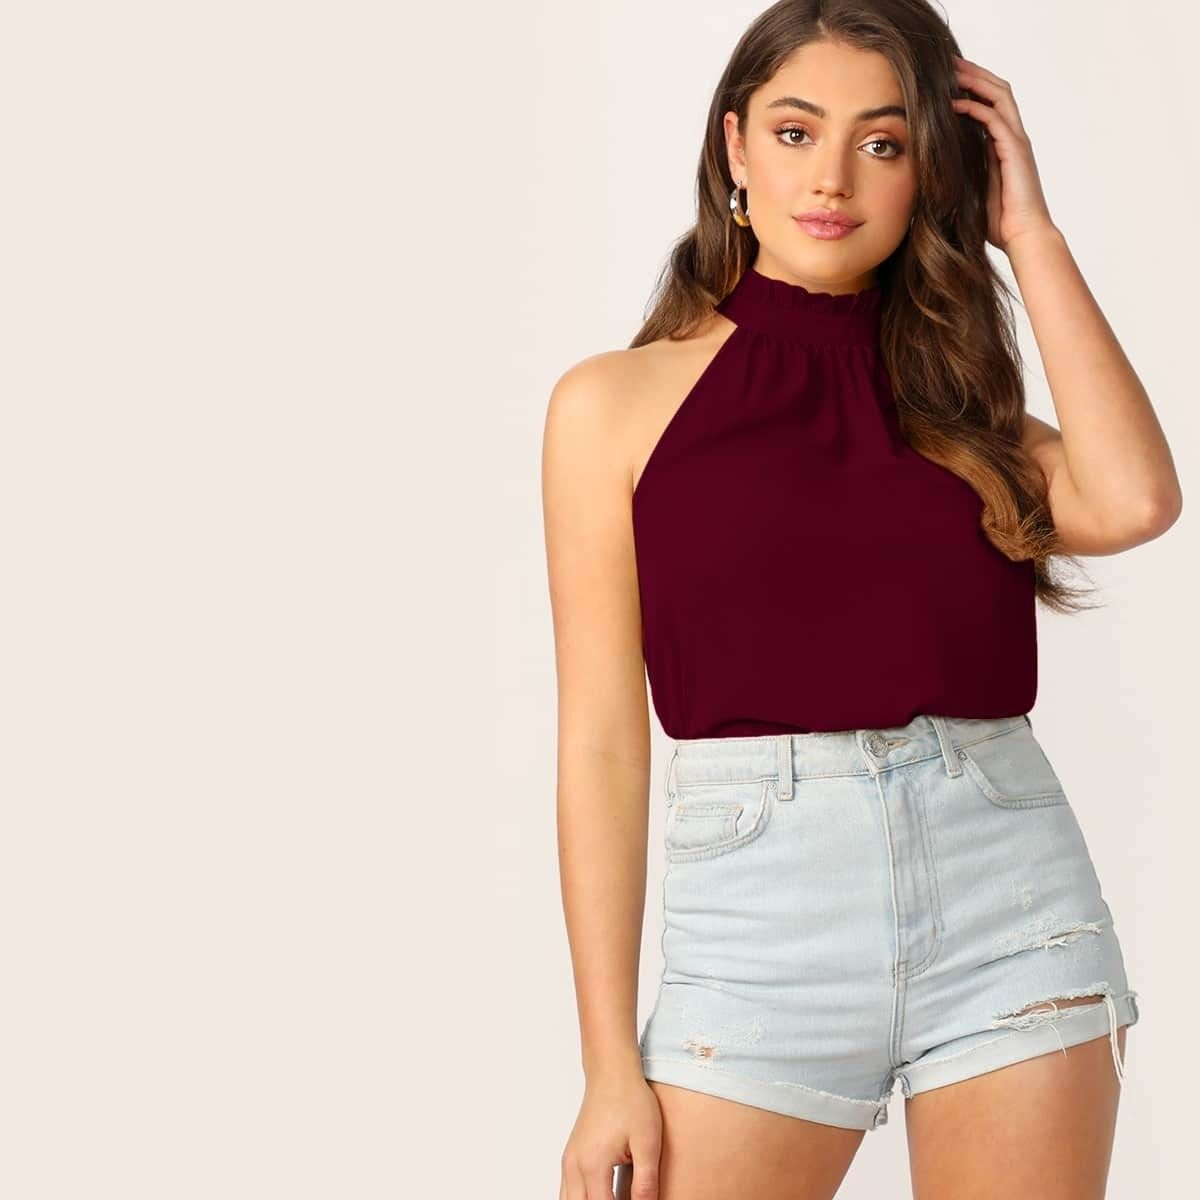 Ruffle-Strap Cami Top in Gingham   Cami tops, Gingham tops